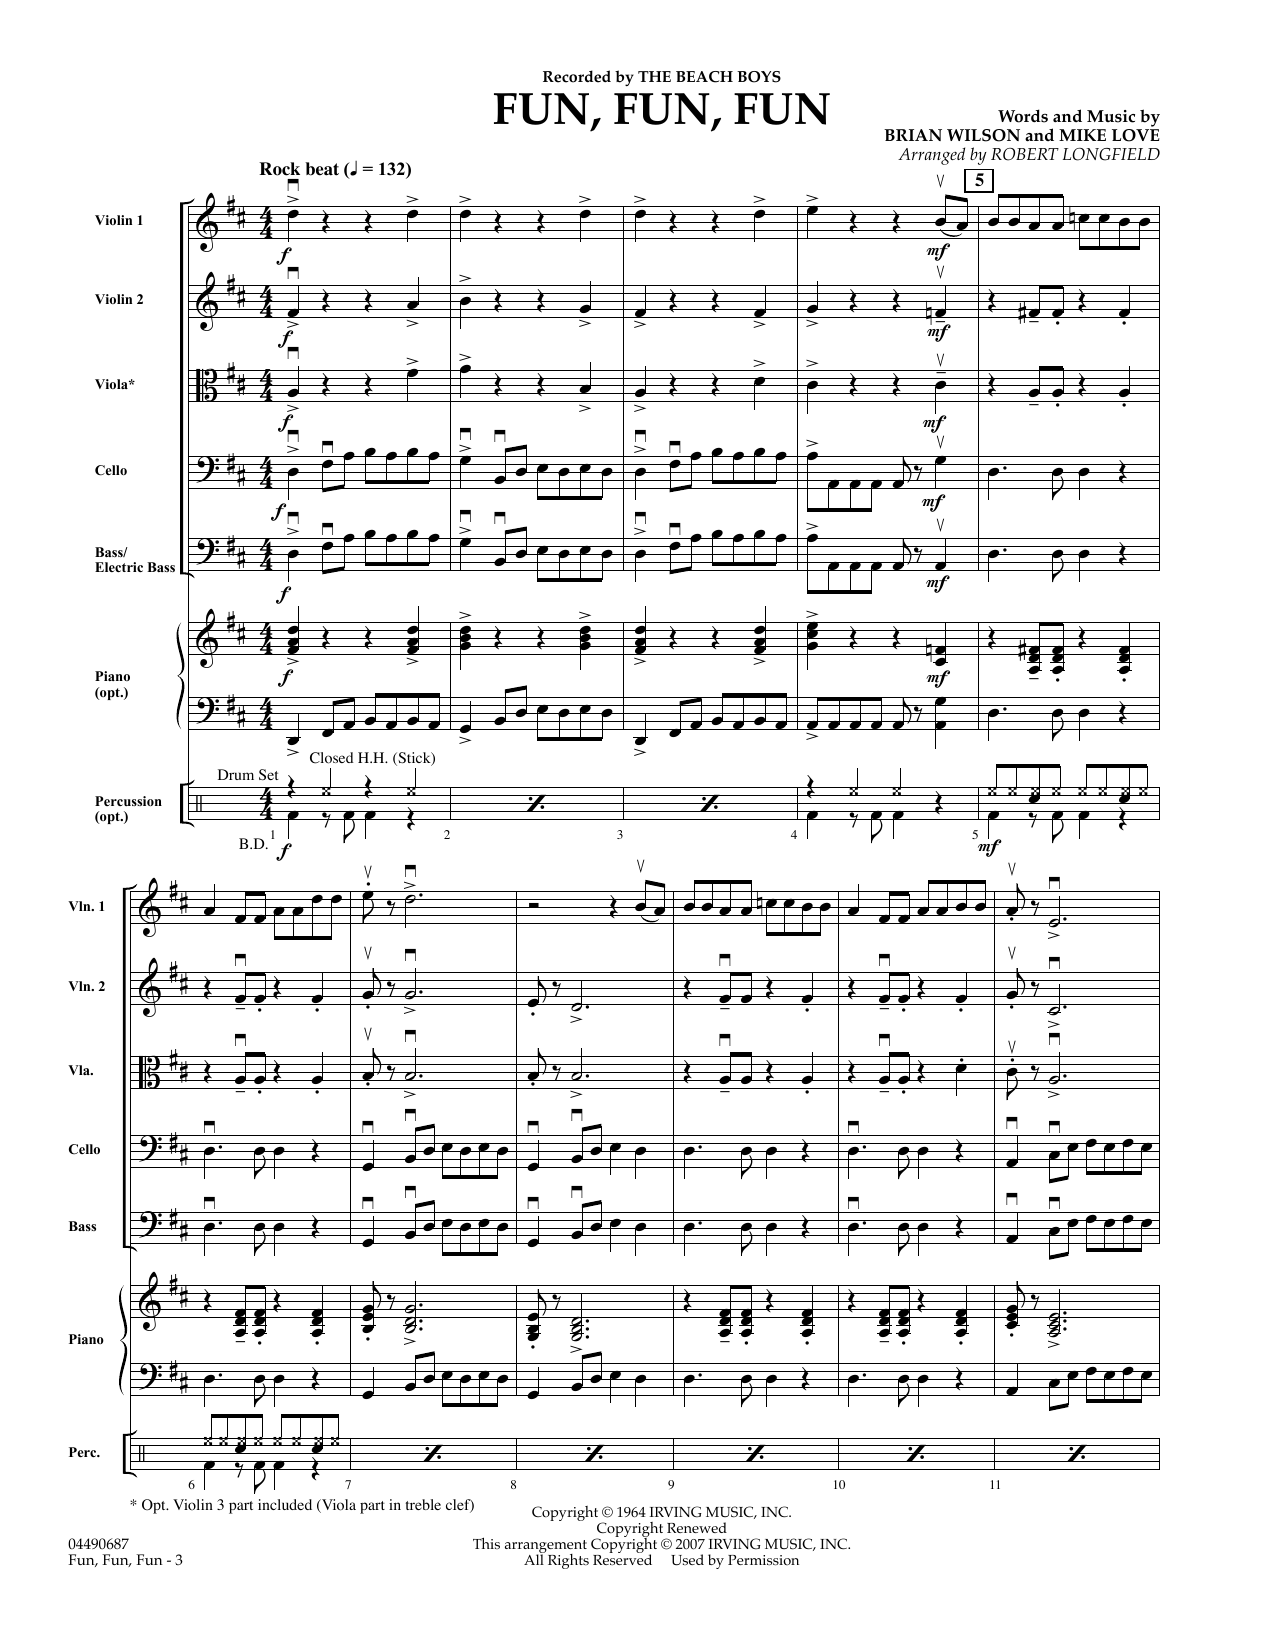 Fun, Fun, Fun (COMPLETE) sheet music for orchestra by The Beach Boys, Brian Wilson, Mike Love and Robert Longfield. Score Image Preview.